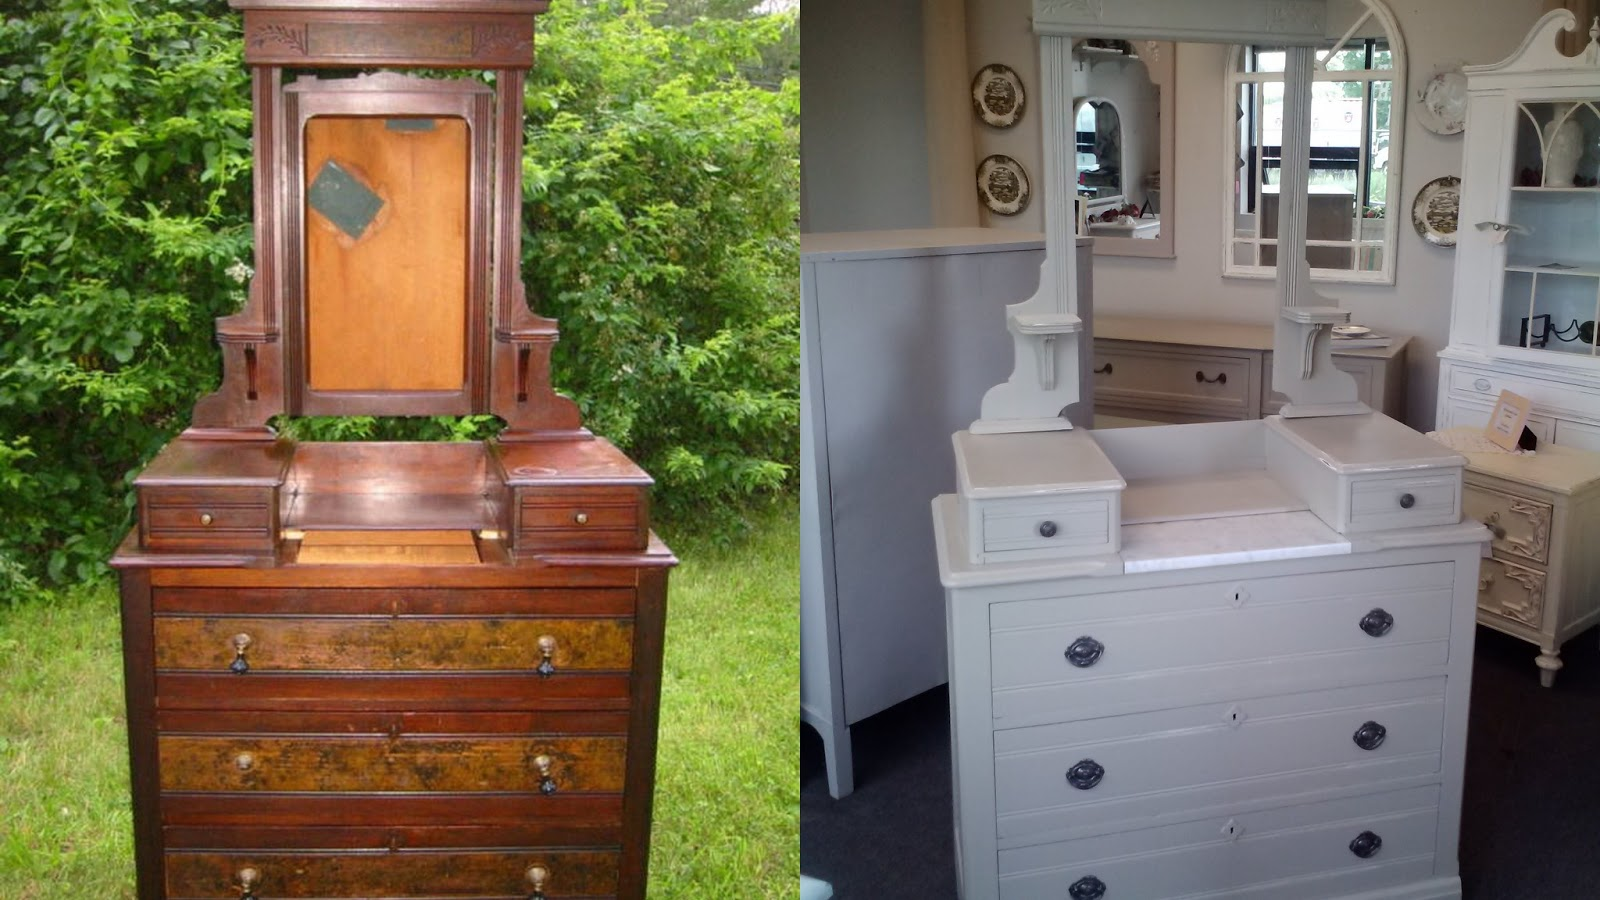 Painting furniture before and after - Painting Furniture Before And After Antique Dresser Painted Mega Greige With Vintage Pulls Painted Antique